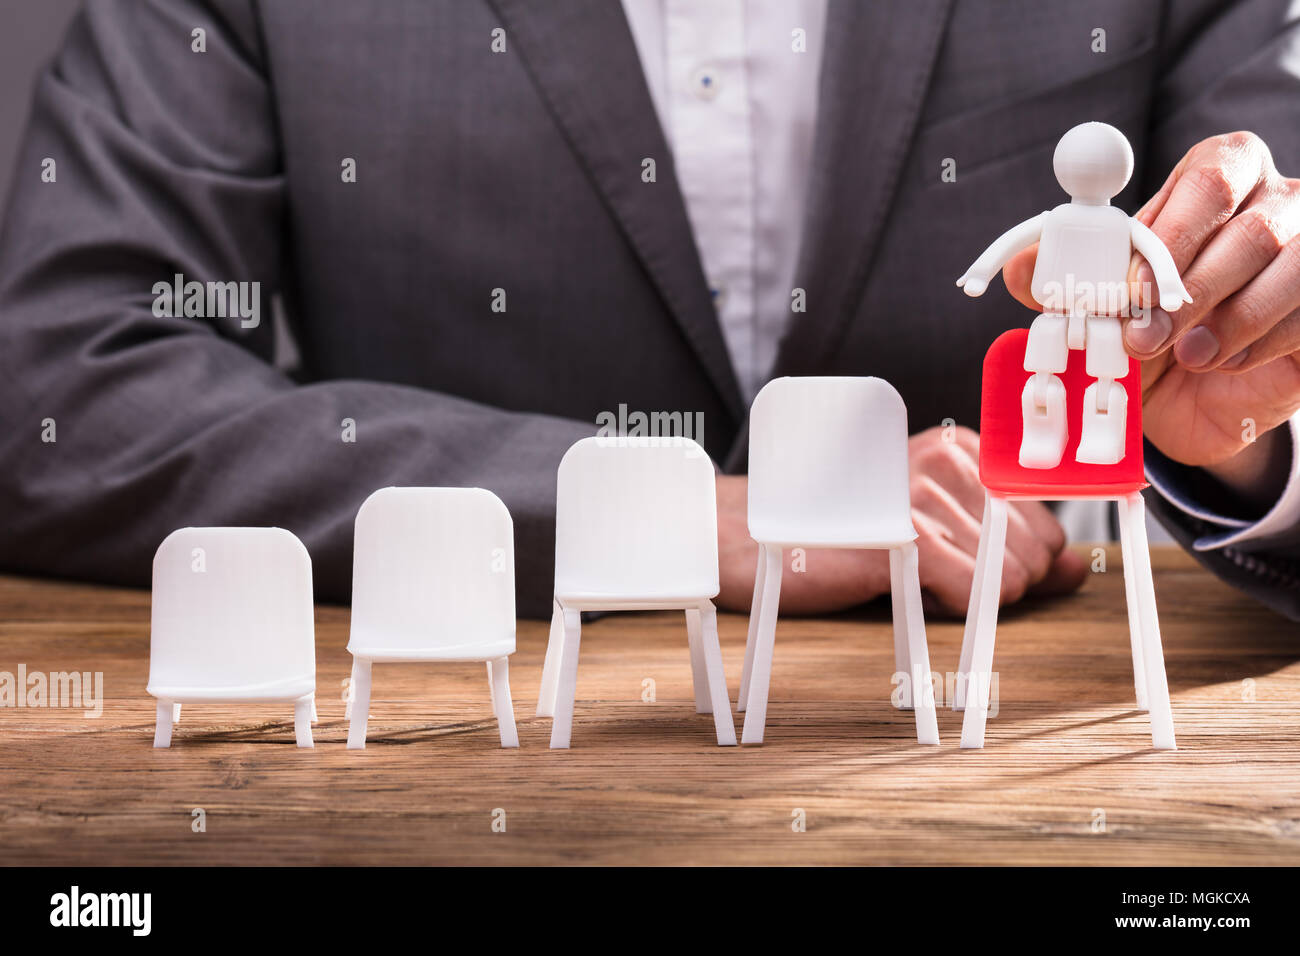 Close-up Of A Businessperson's Hand Placing Human Figure On Red Chair Over Wooden Desk Stock Photo